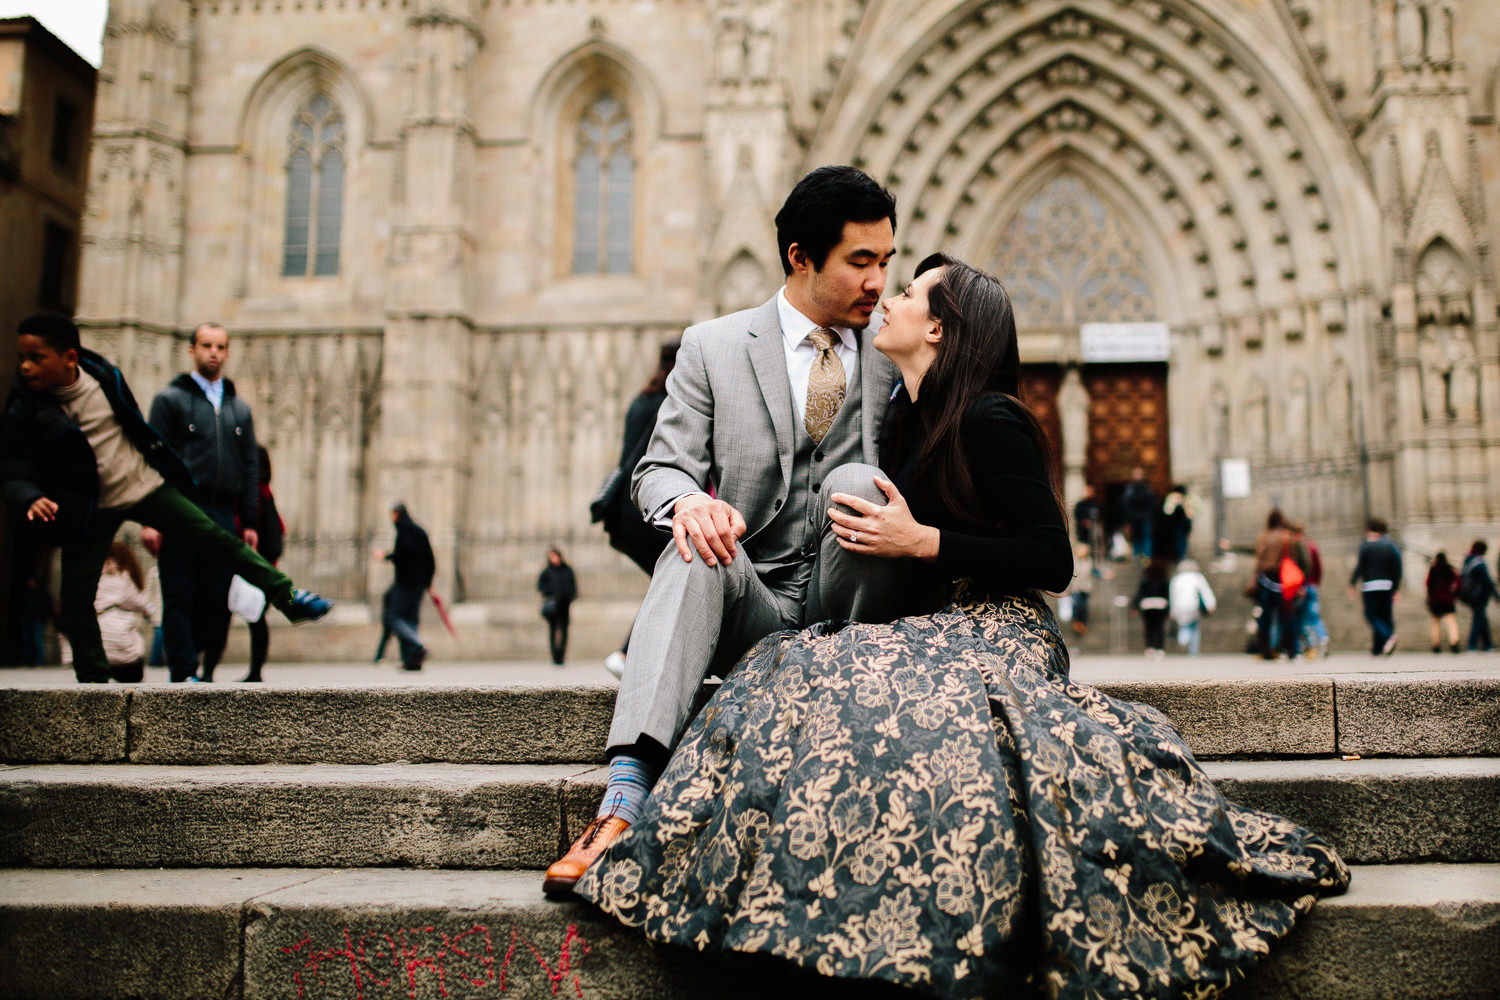 barcelona-wedding-photographer007.jpg